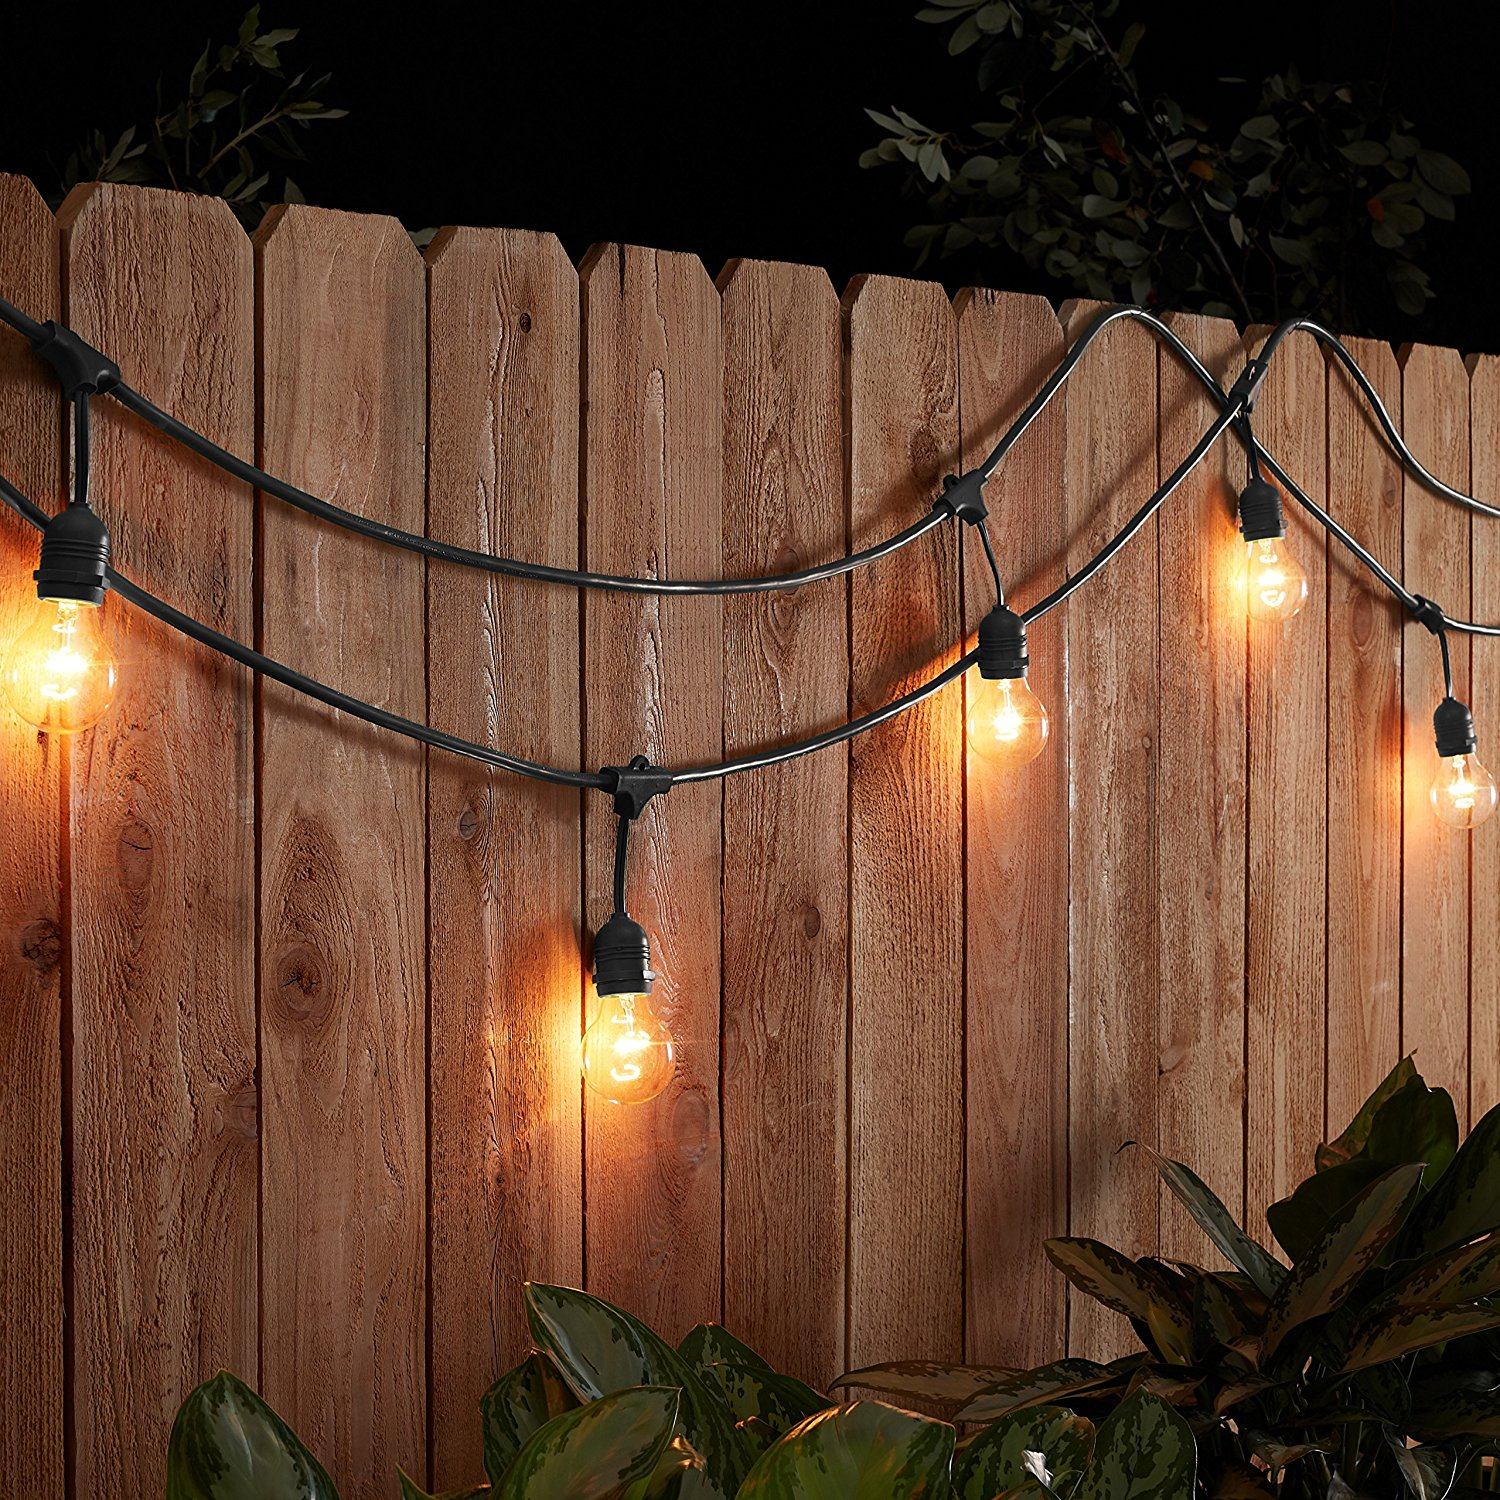 The top 13 best outdoor string lights turn your backyard into a cozy rustic oasis with the amazonbasics weatherproof outdoor patio string lights the premium string of lights quickly creates a workwithnaturefo